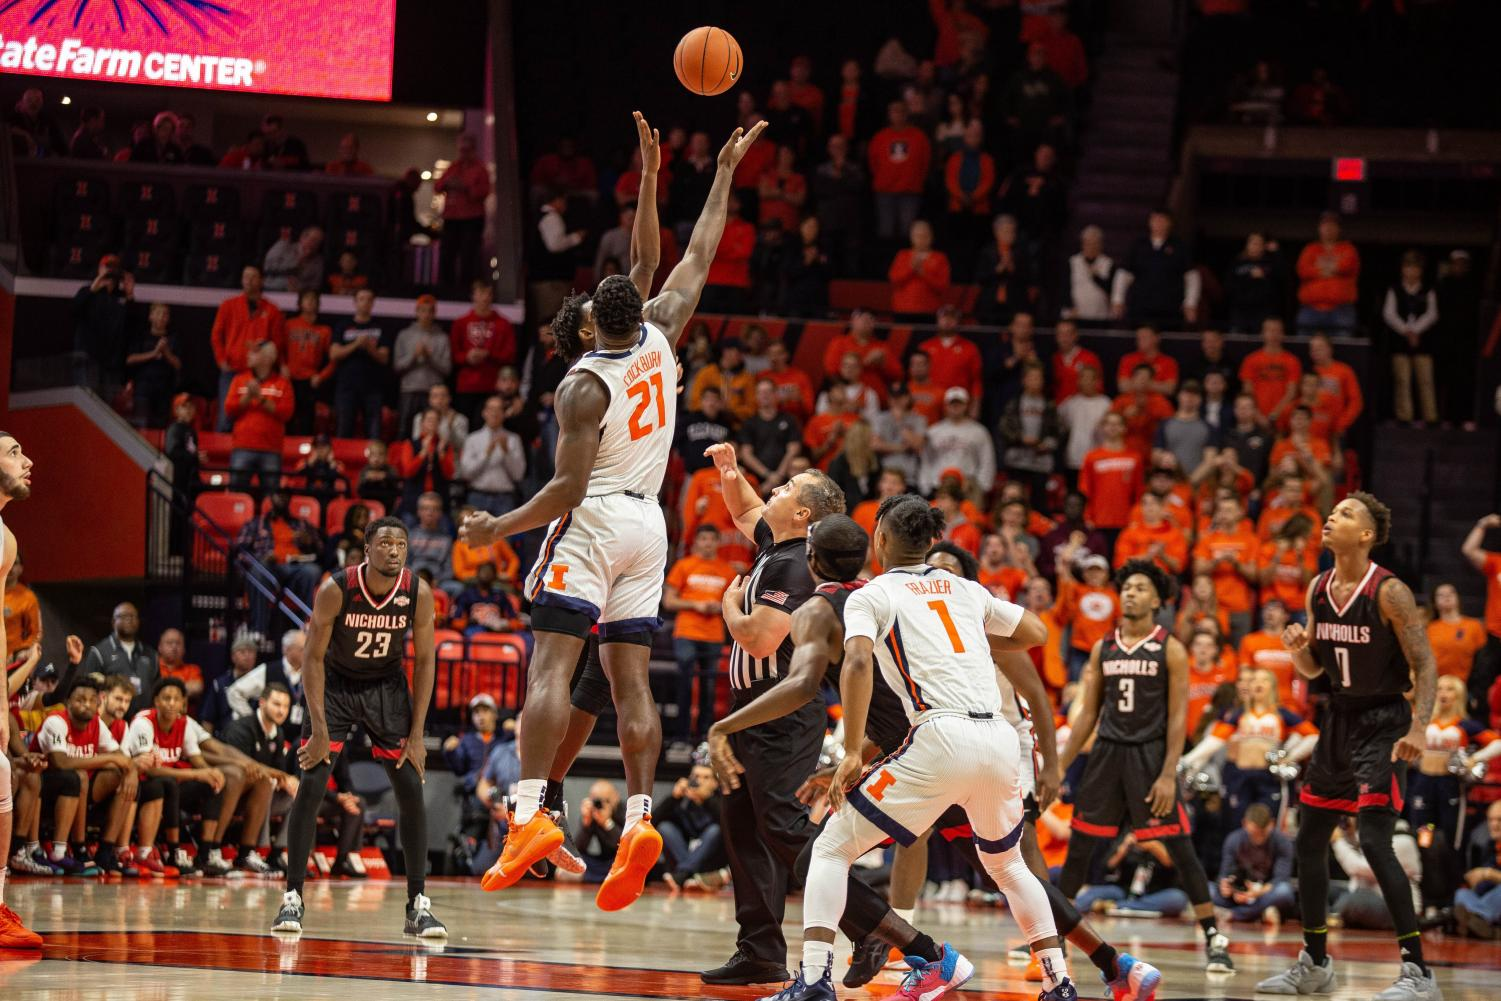 Illini Men's Basketball faced Nicholls State at State Farm Center on Nov. 5, 2019.